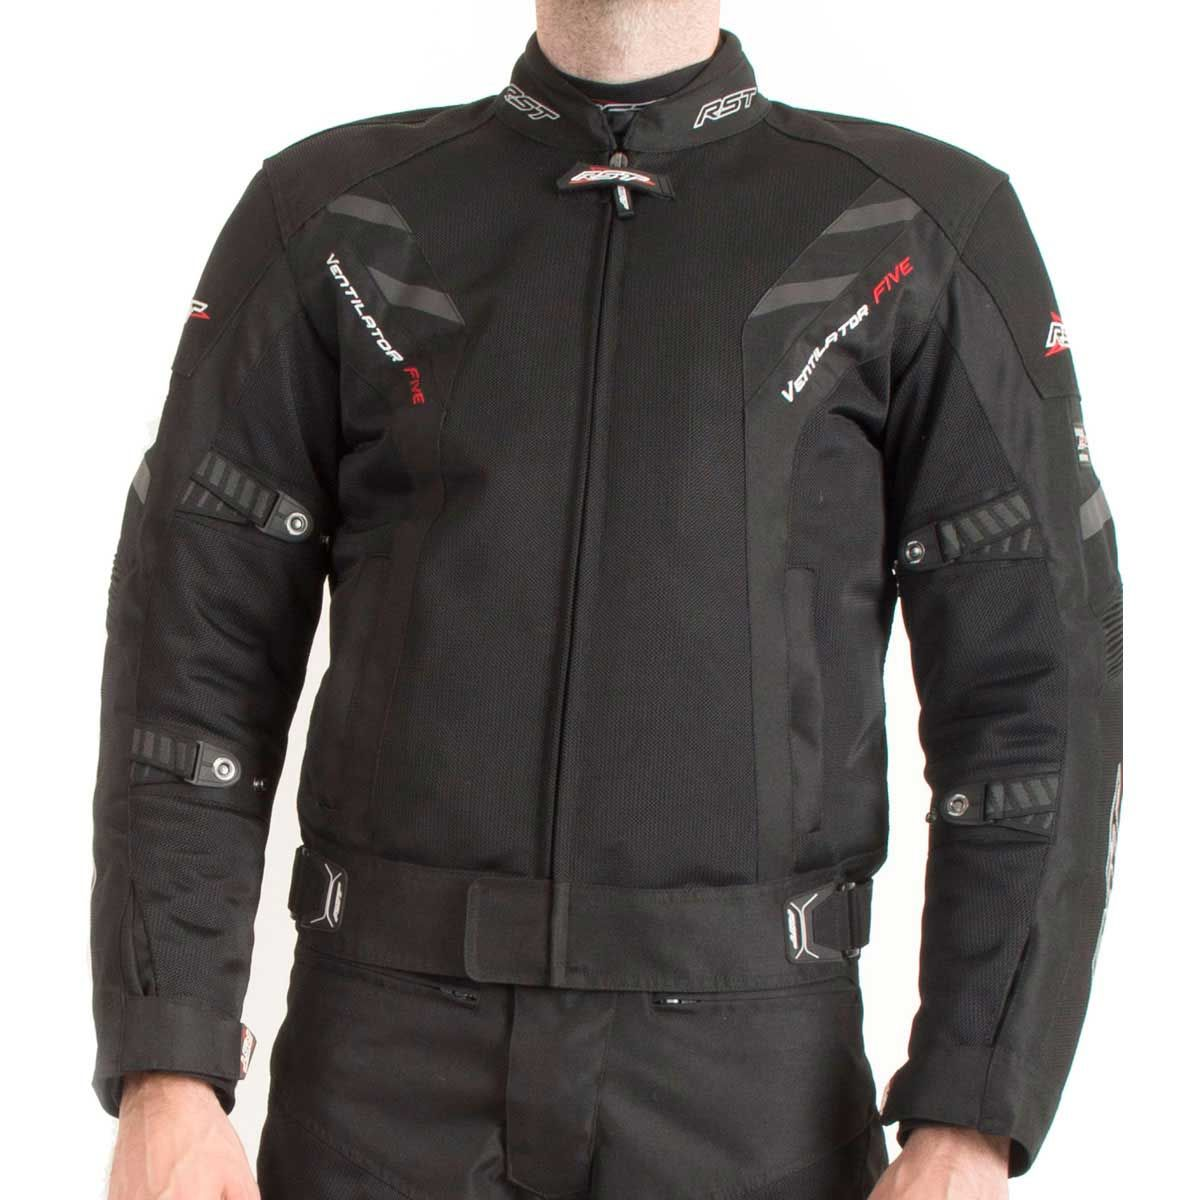 RST Pro Series Ventilator V Textile Motorcycle Jacket Black